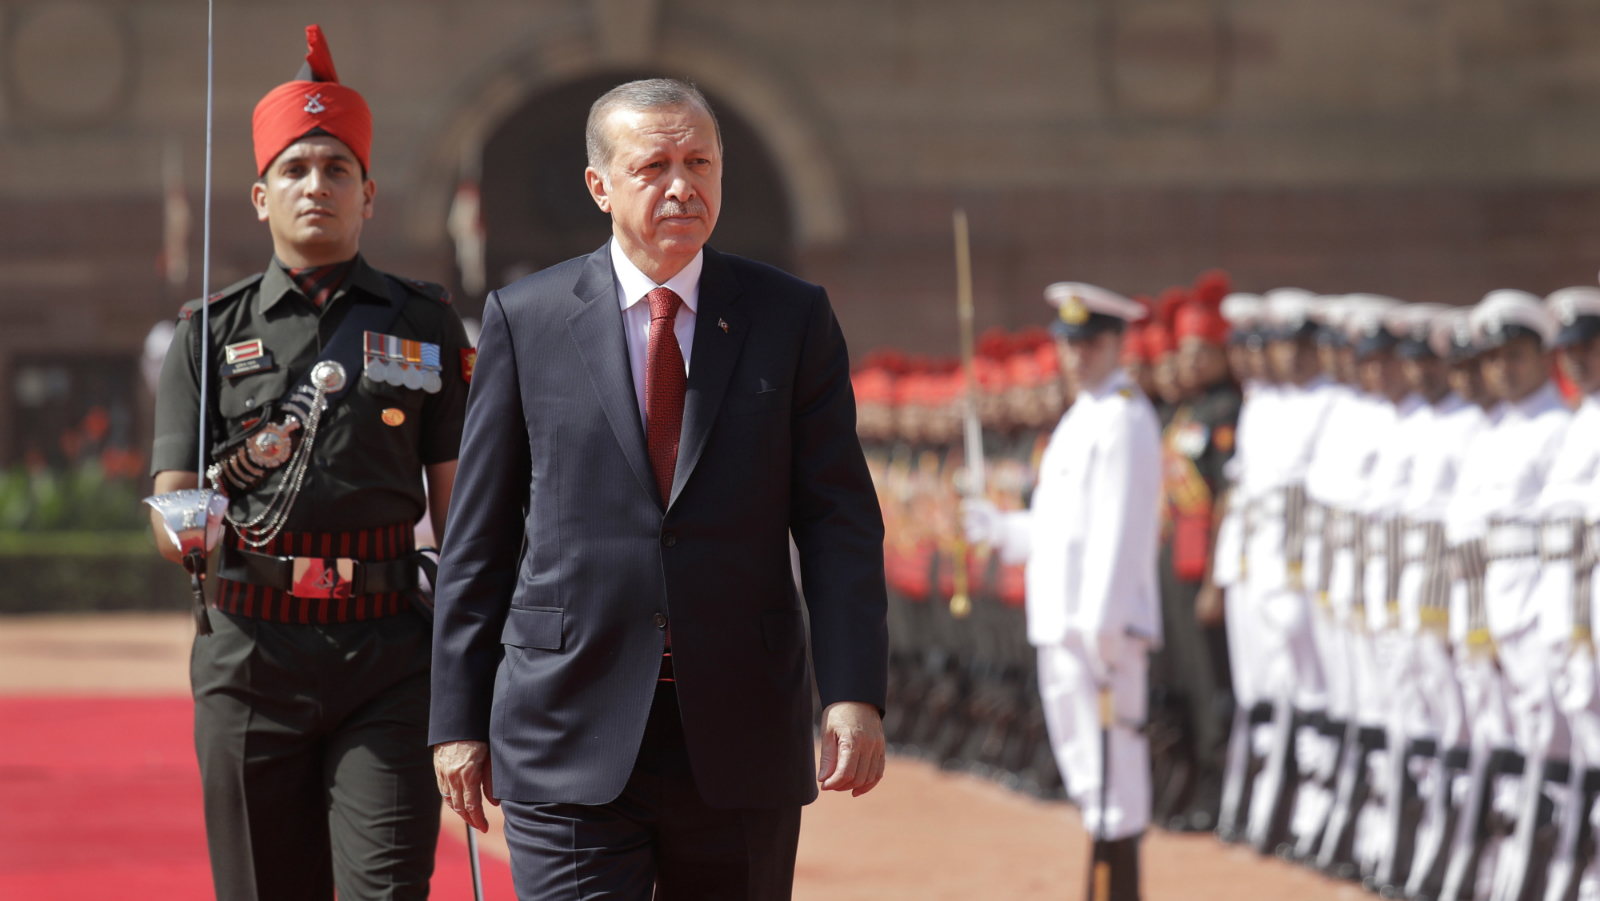 Turkish President Recep Tayyip Erdogan, second from left, inspects a military guard of honor upon his arrival at the Indian presidential palace in New Delhi, India, Monday, May 1, 2017. Erdogan is on a two-day state visit to India. (AP Photo/Manish Swarup)